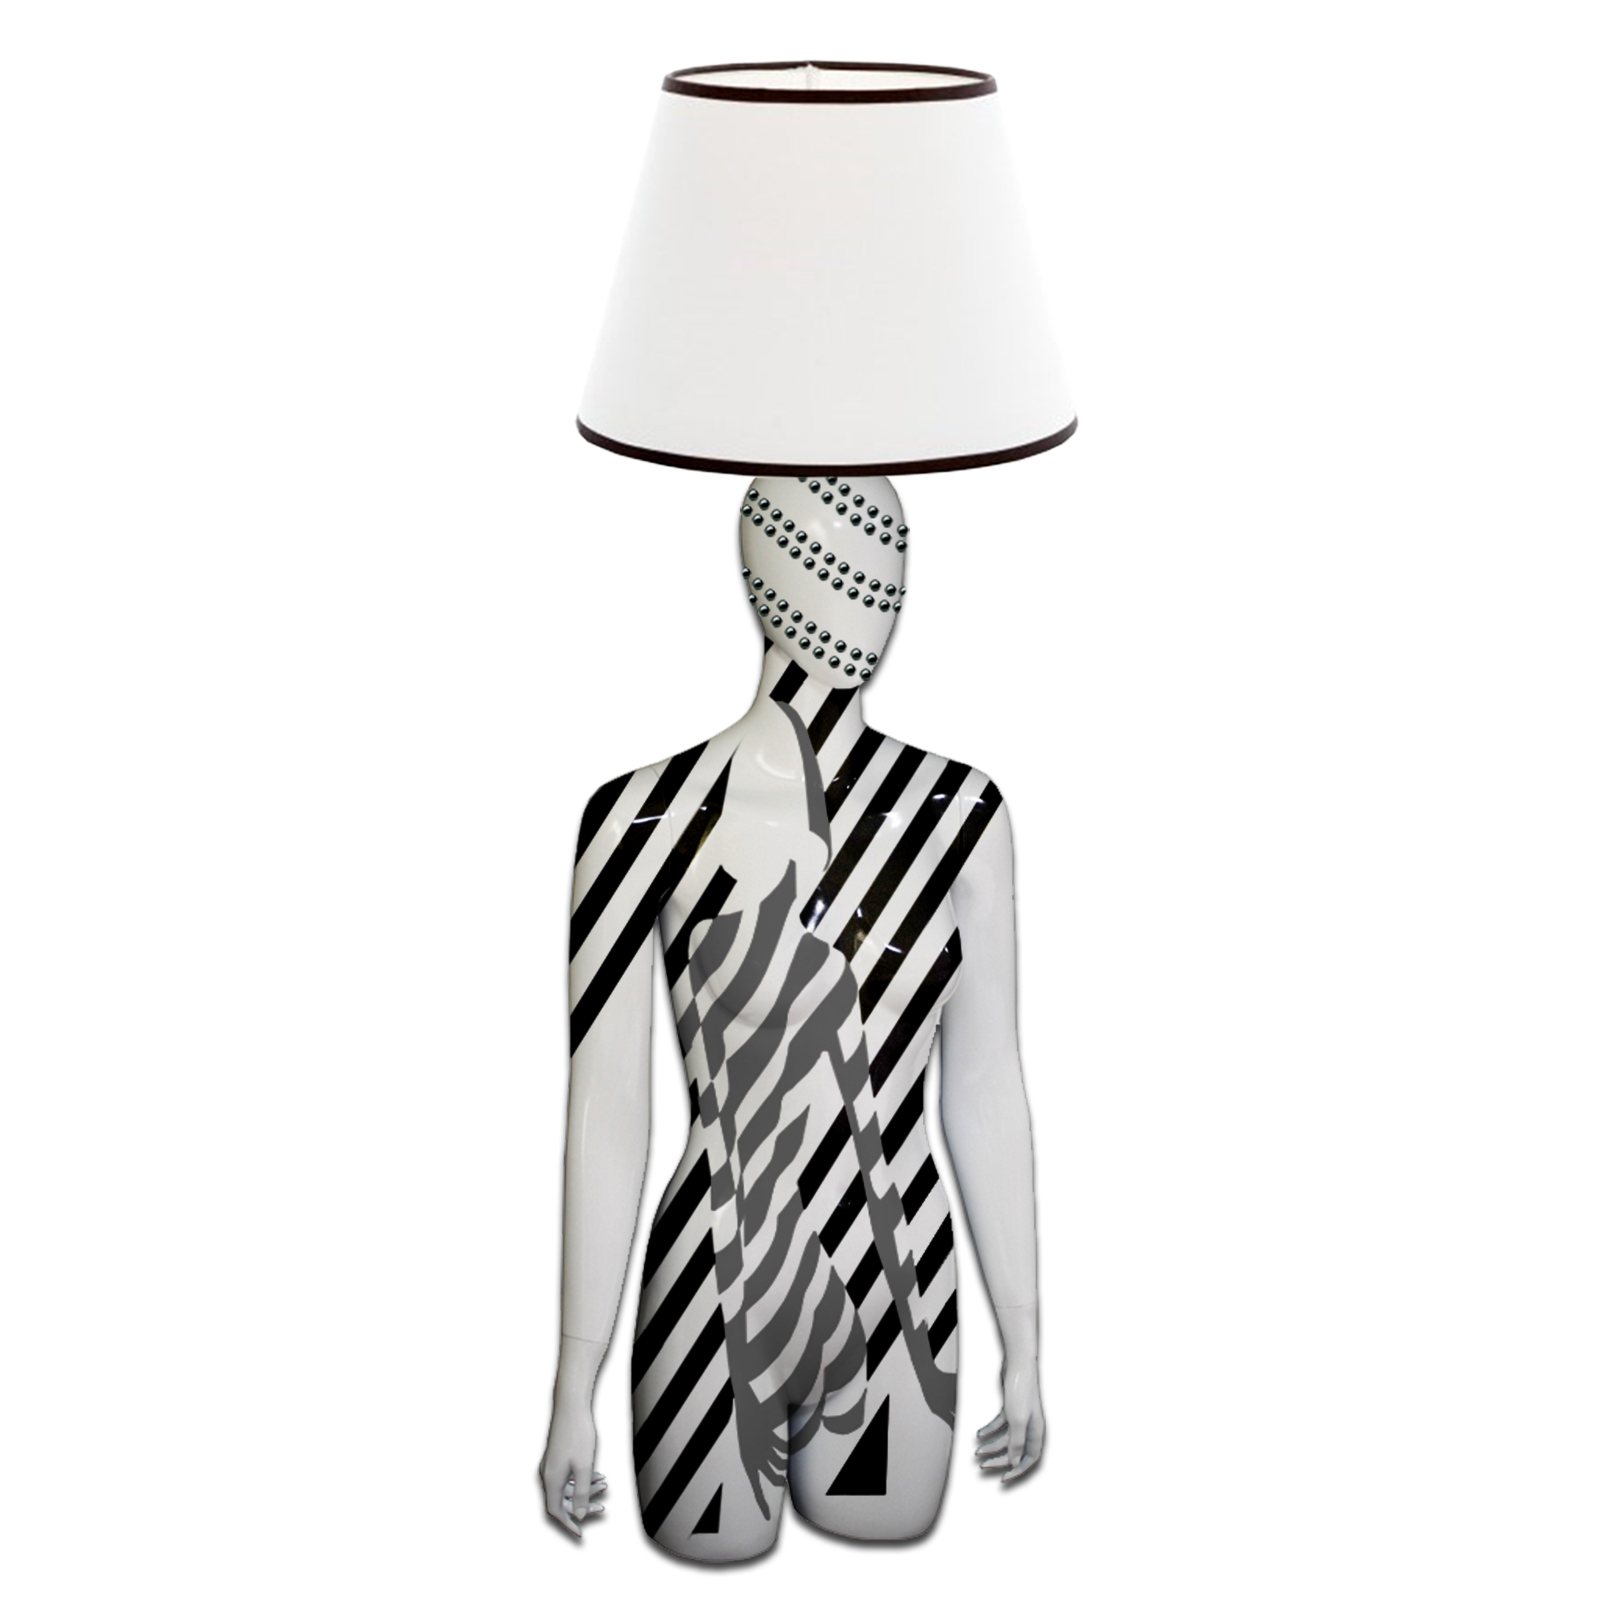 Mannequin Table Lamp_Female Torso_Graphic Woman Grey